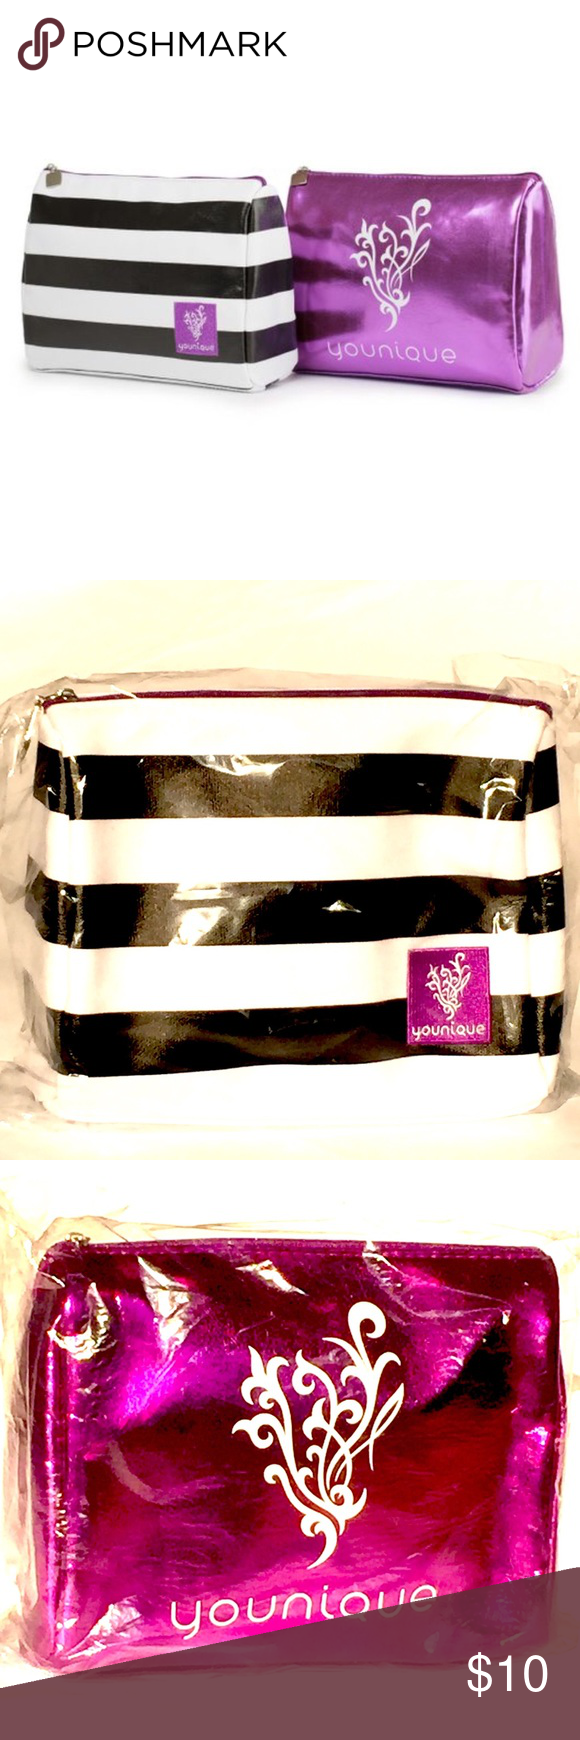 Younique Makeup Bag in Purple or B&W Stripes This